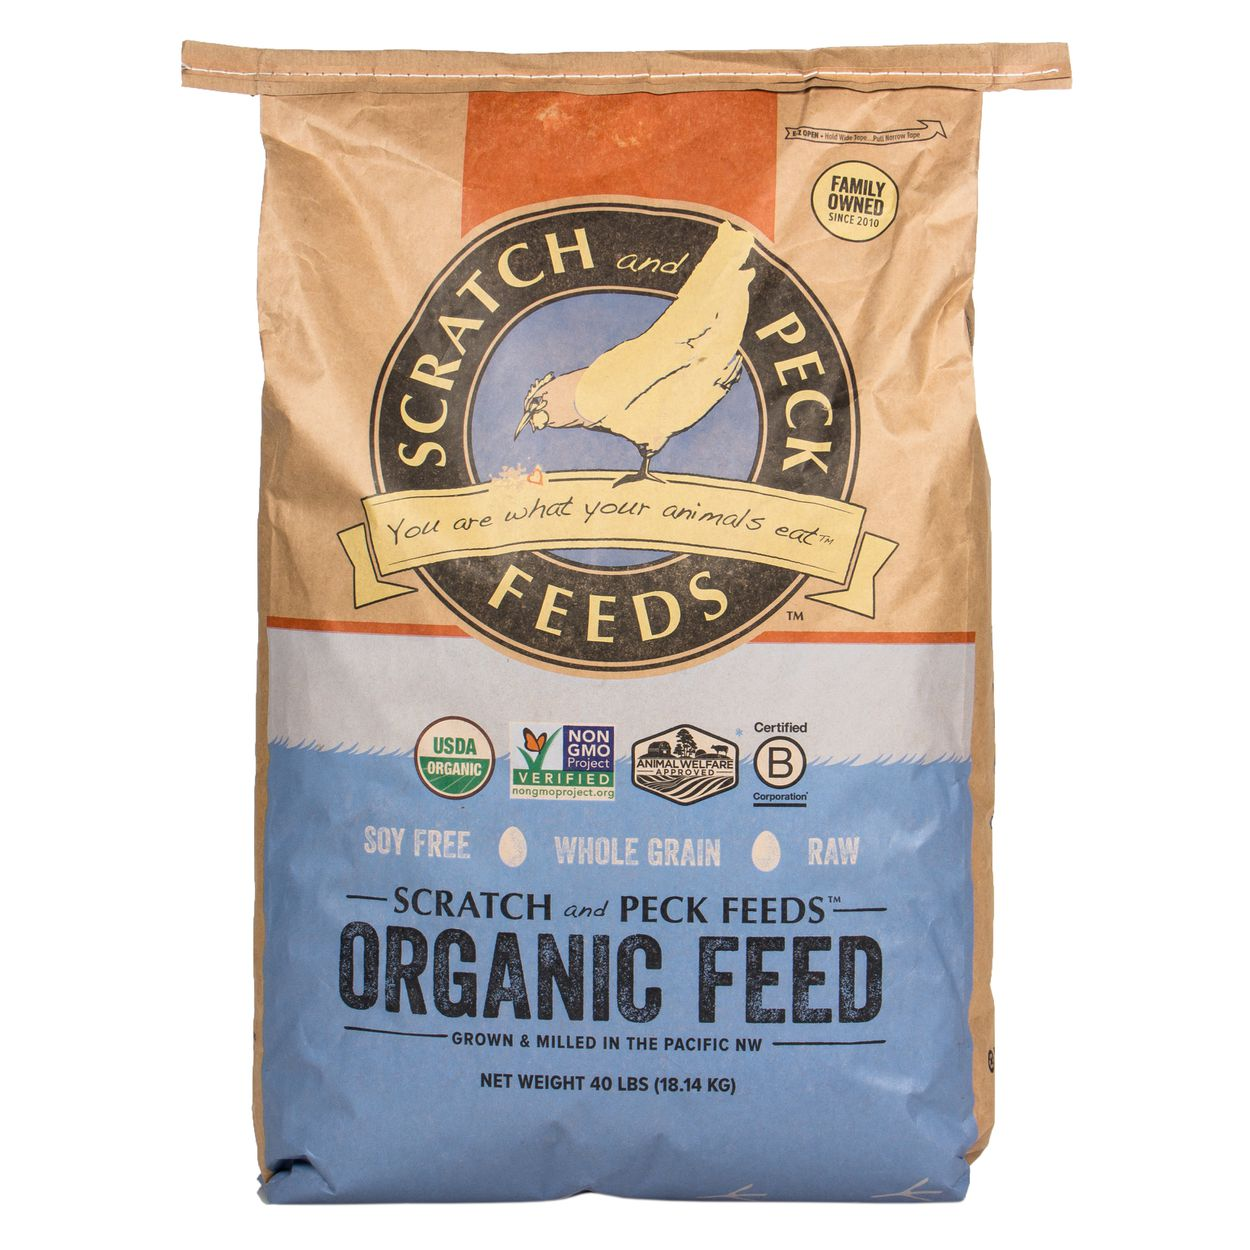 Scratch and Peck Feeds Naturally Free Organic Grower Chicken & Duck Feed Image